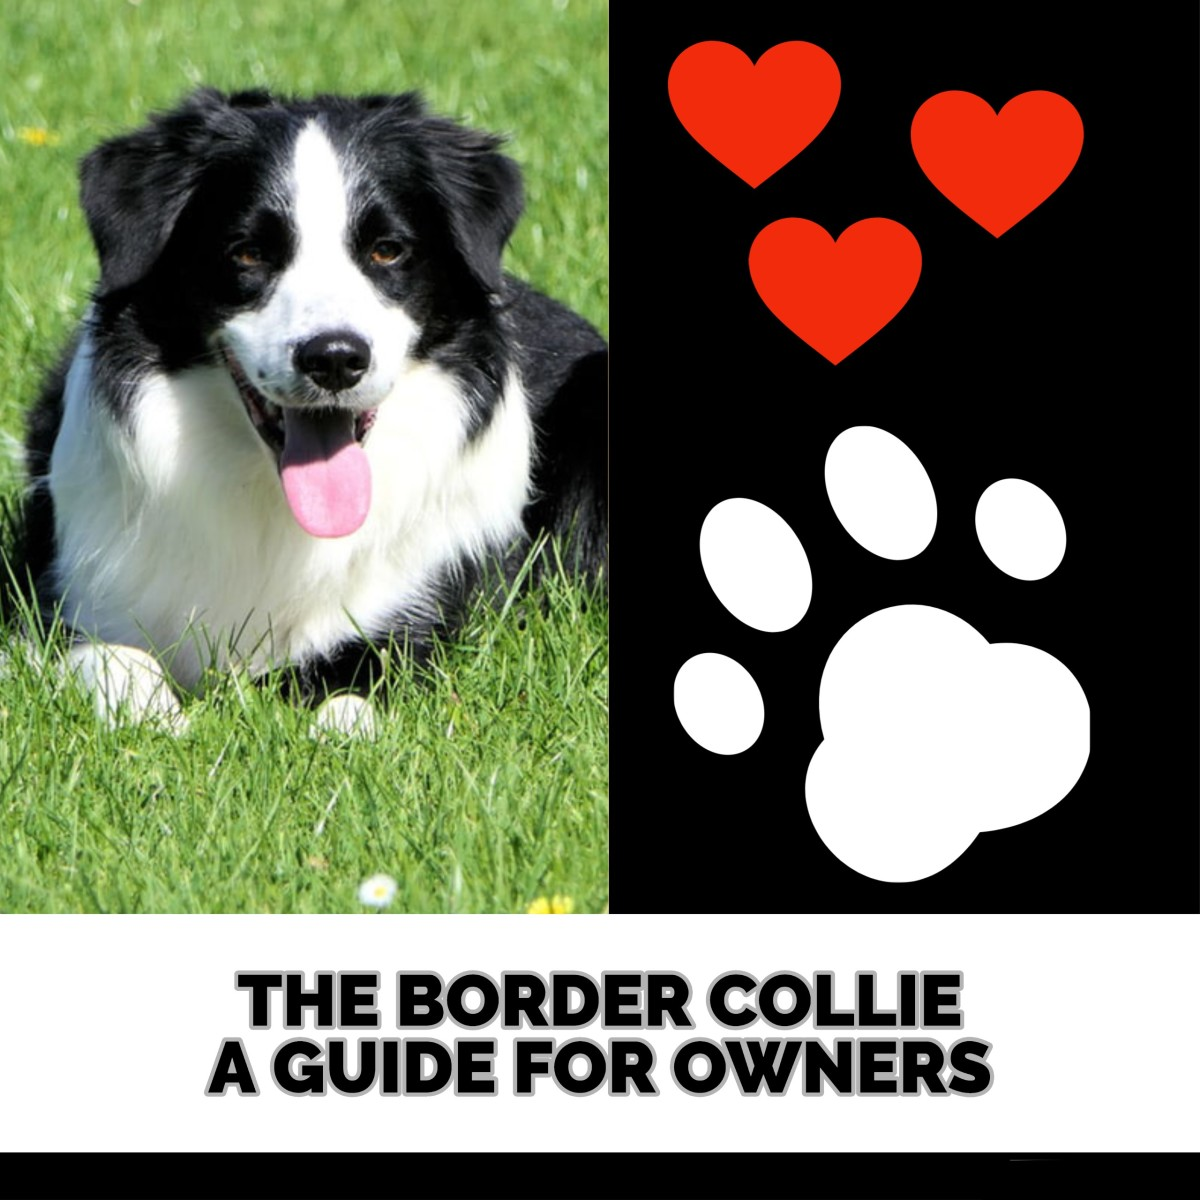 The Border Collie: A Guide for Owners